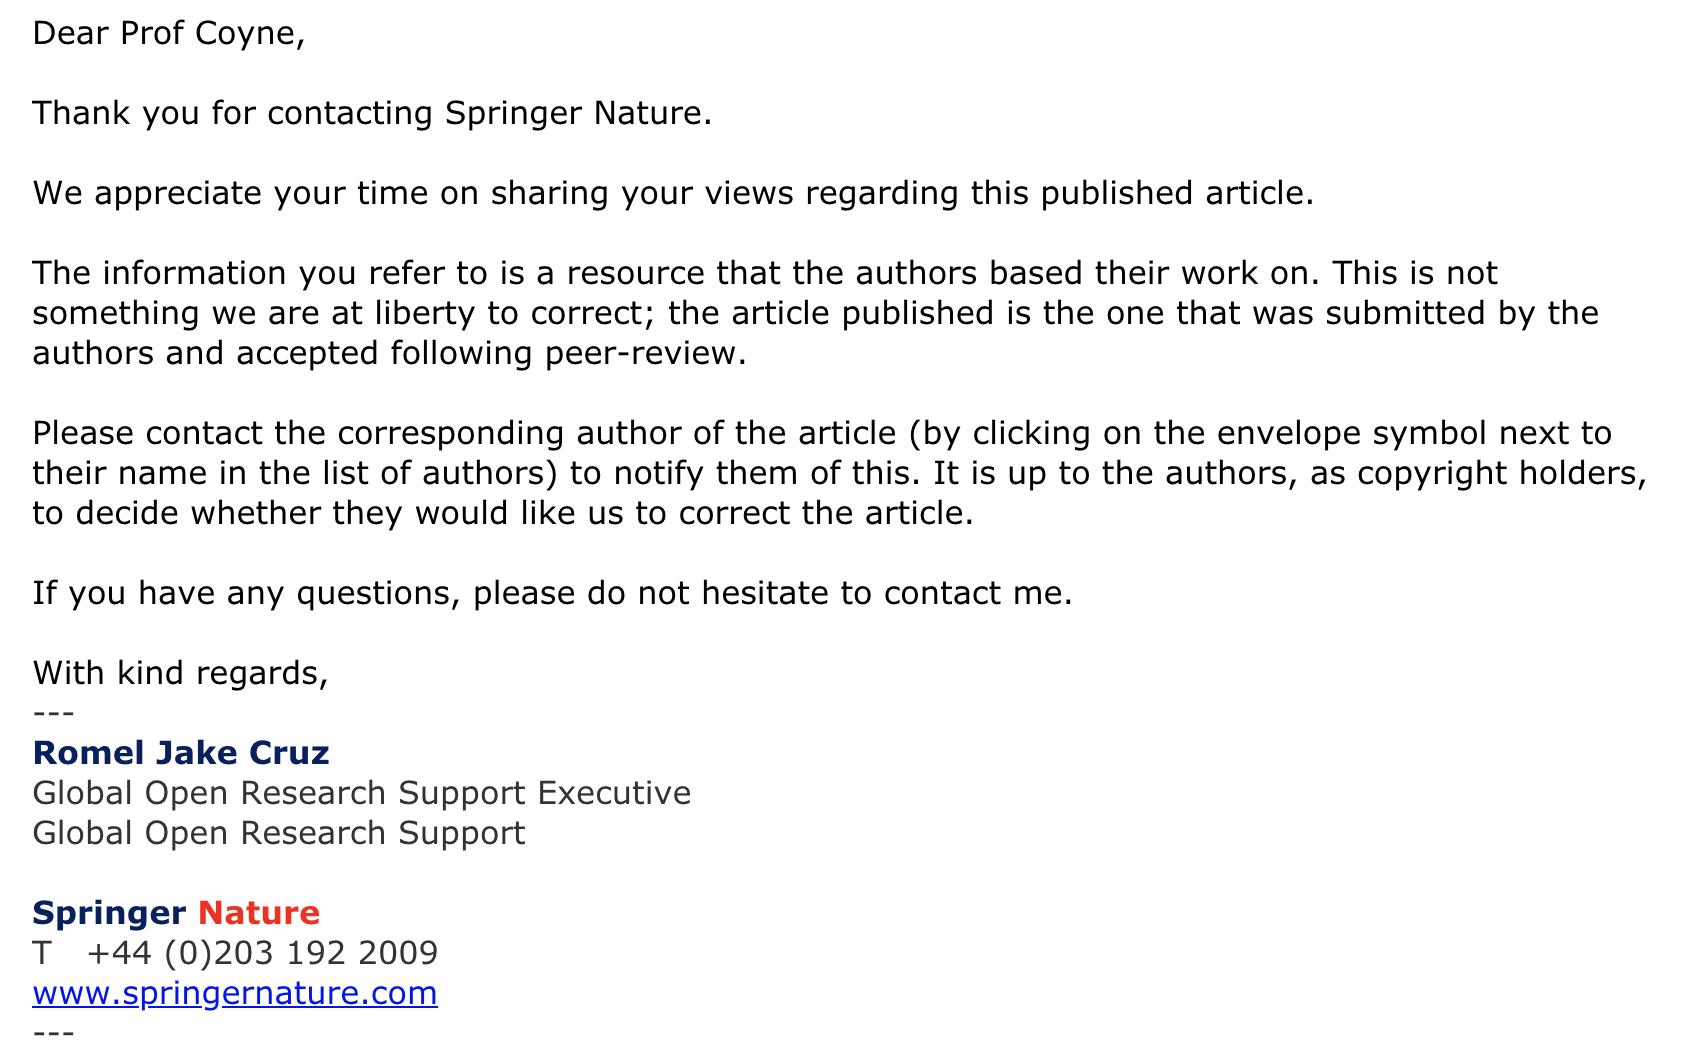 003 Springer Response Research Paper How To Publish In Marvelous Journal Full